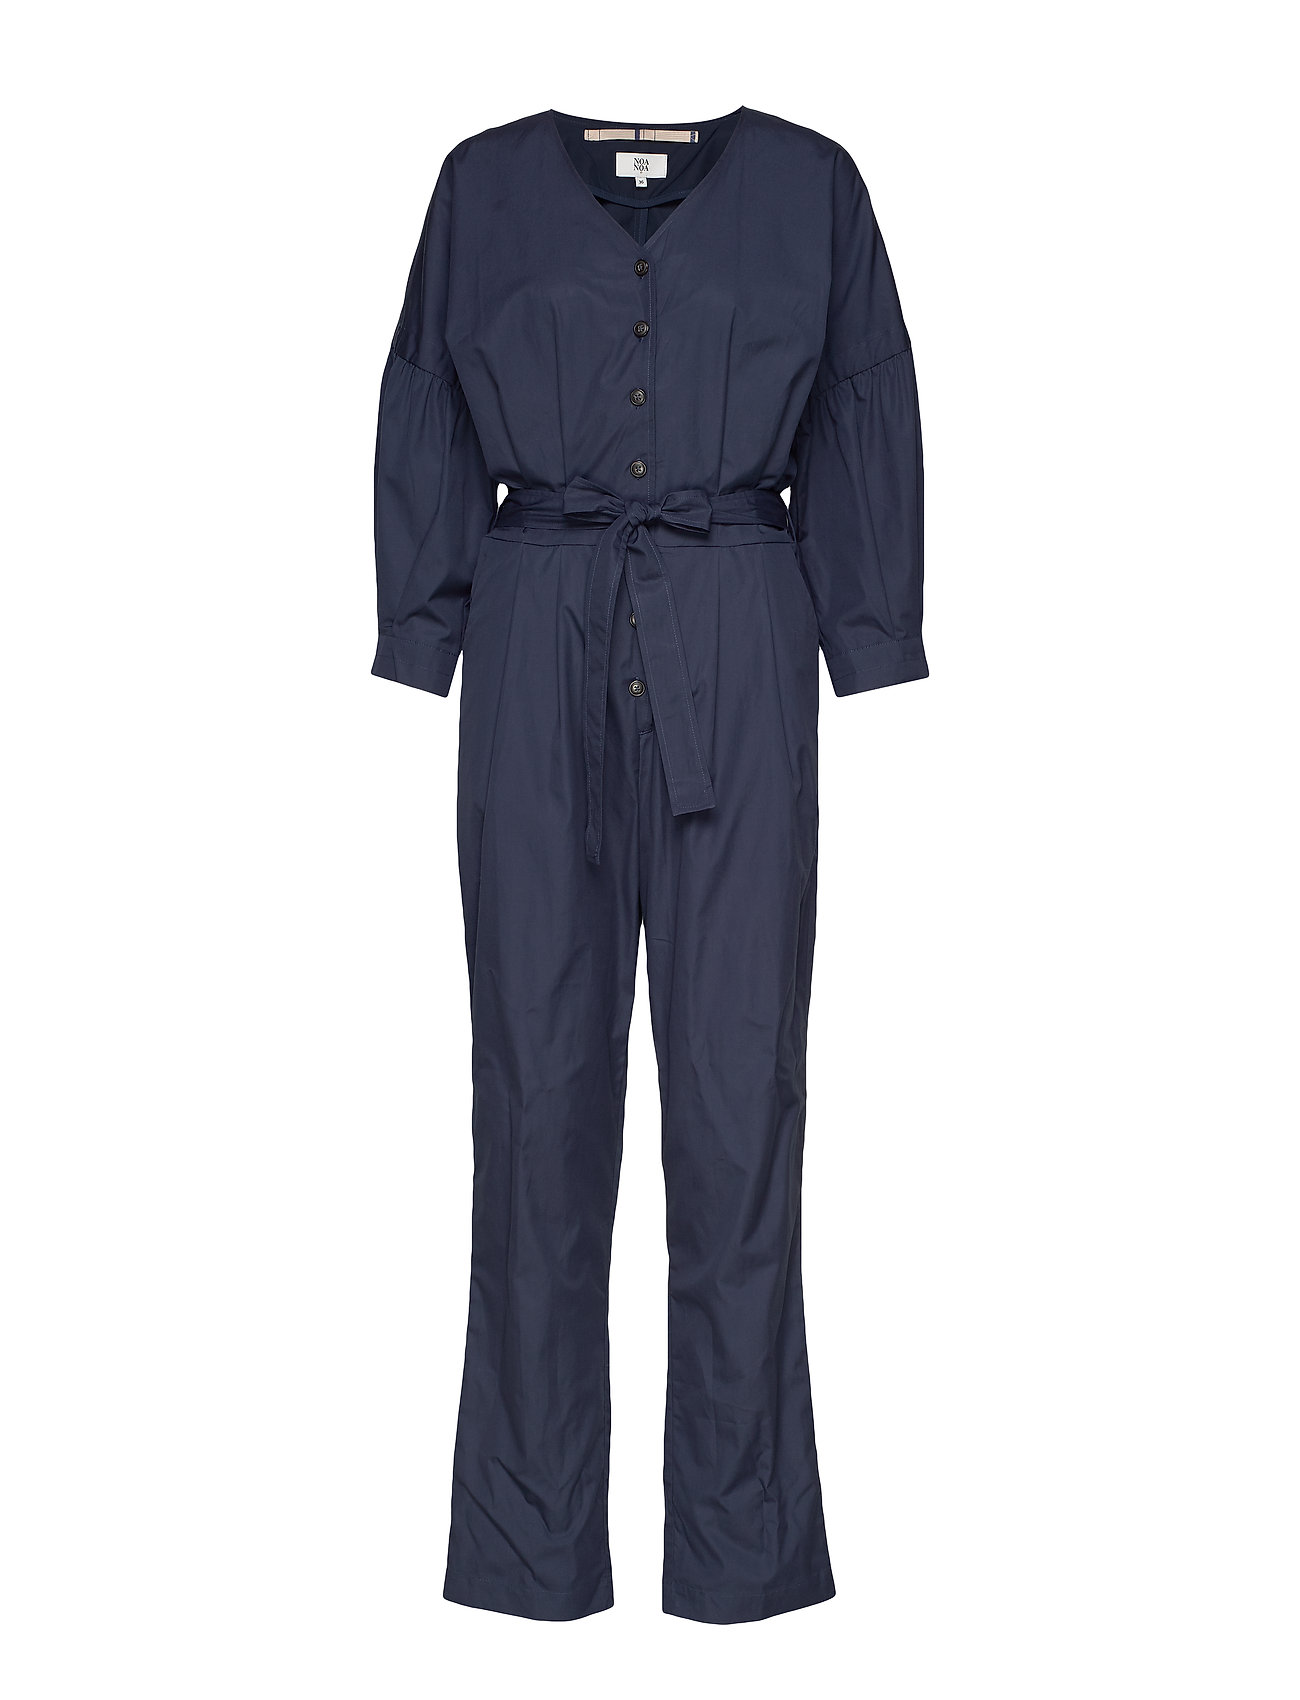 Noa Noa Jumpsuit - DRESS BLUES